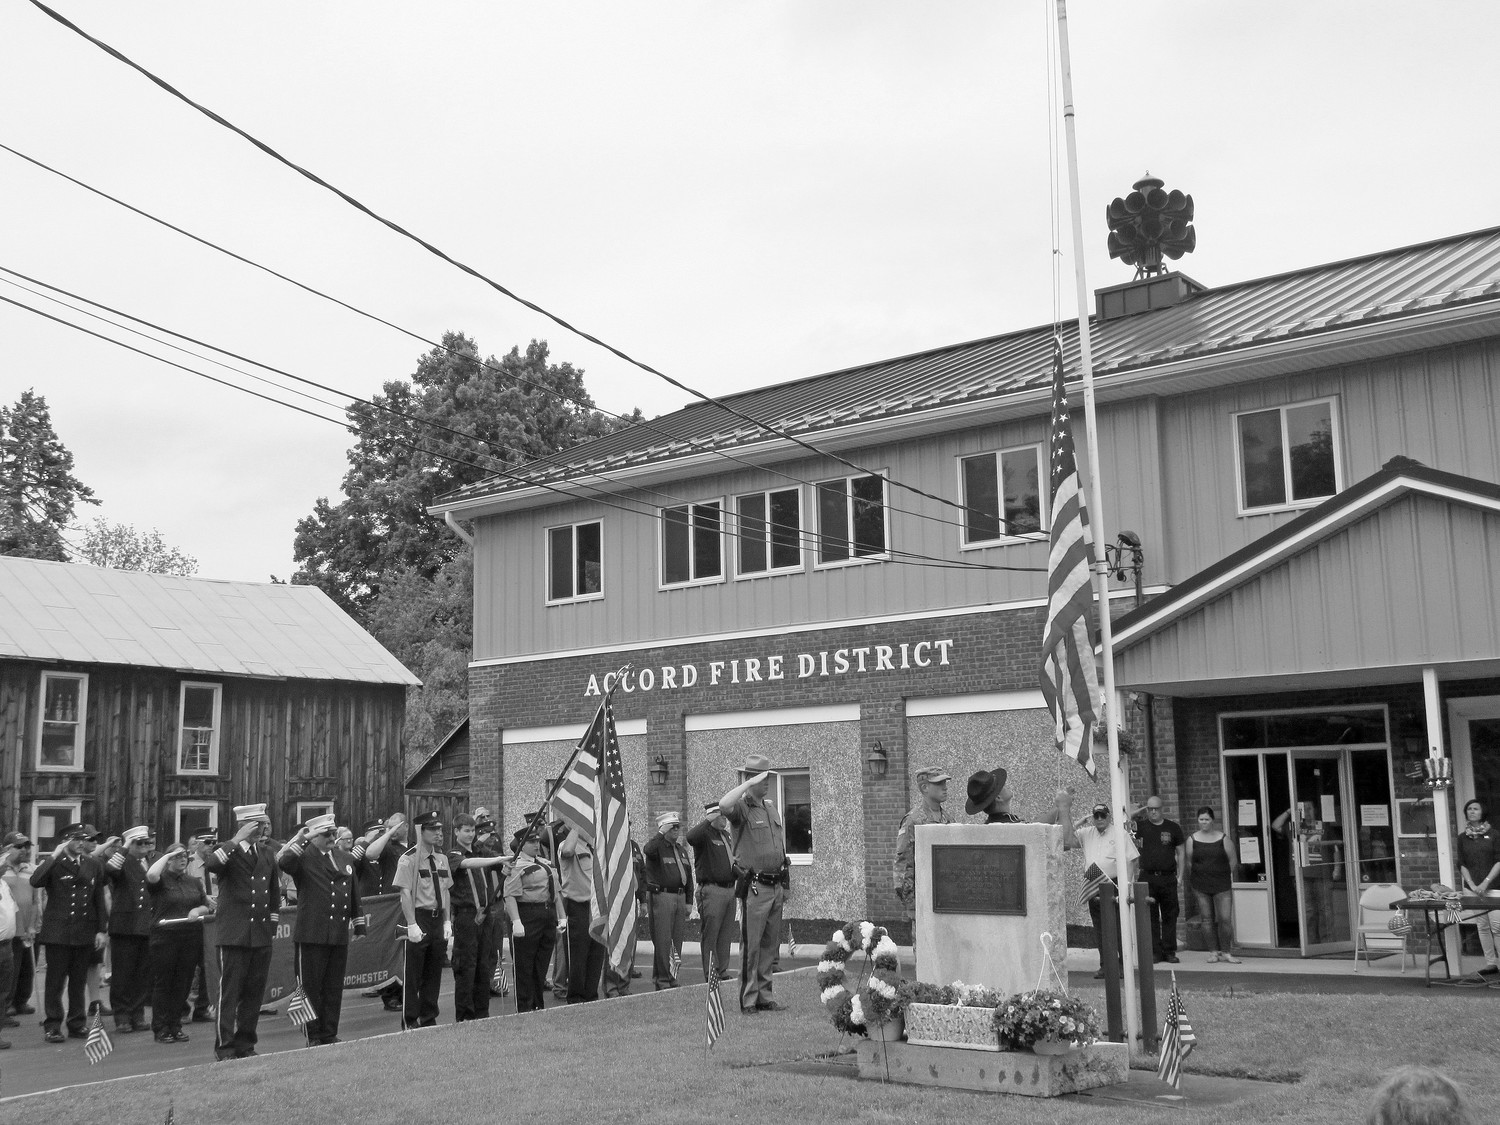 Ceremony at the Accord Firehouse (after the parade)